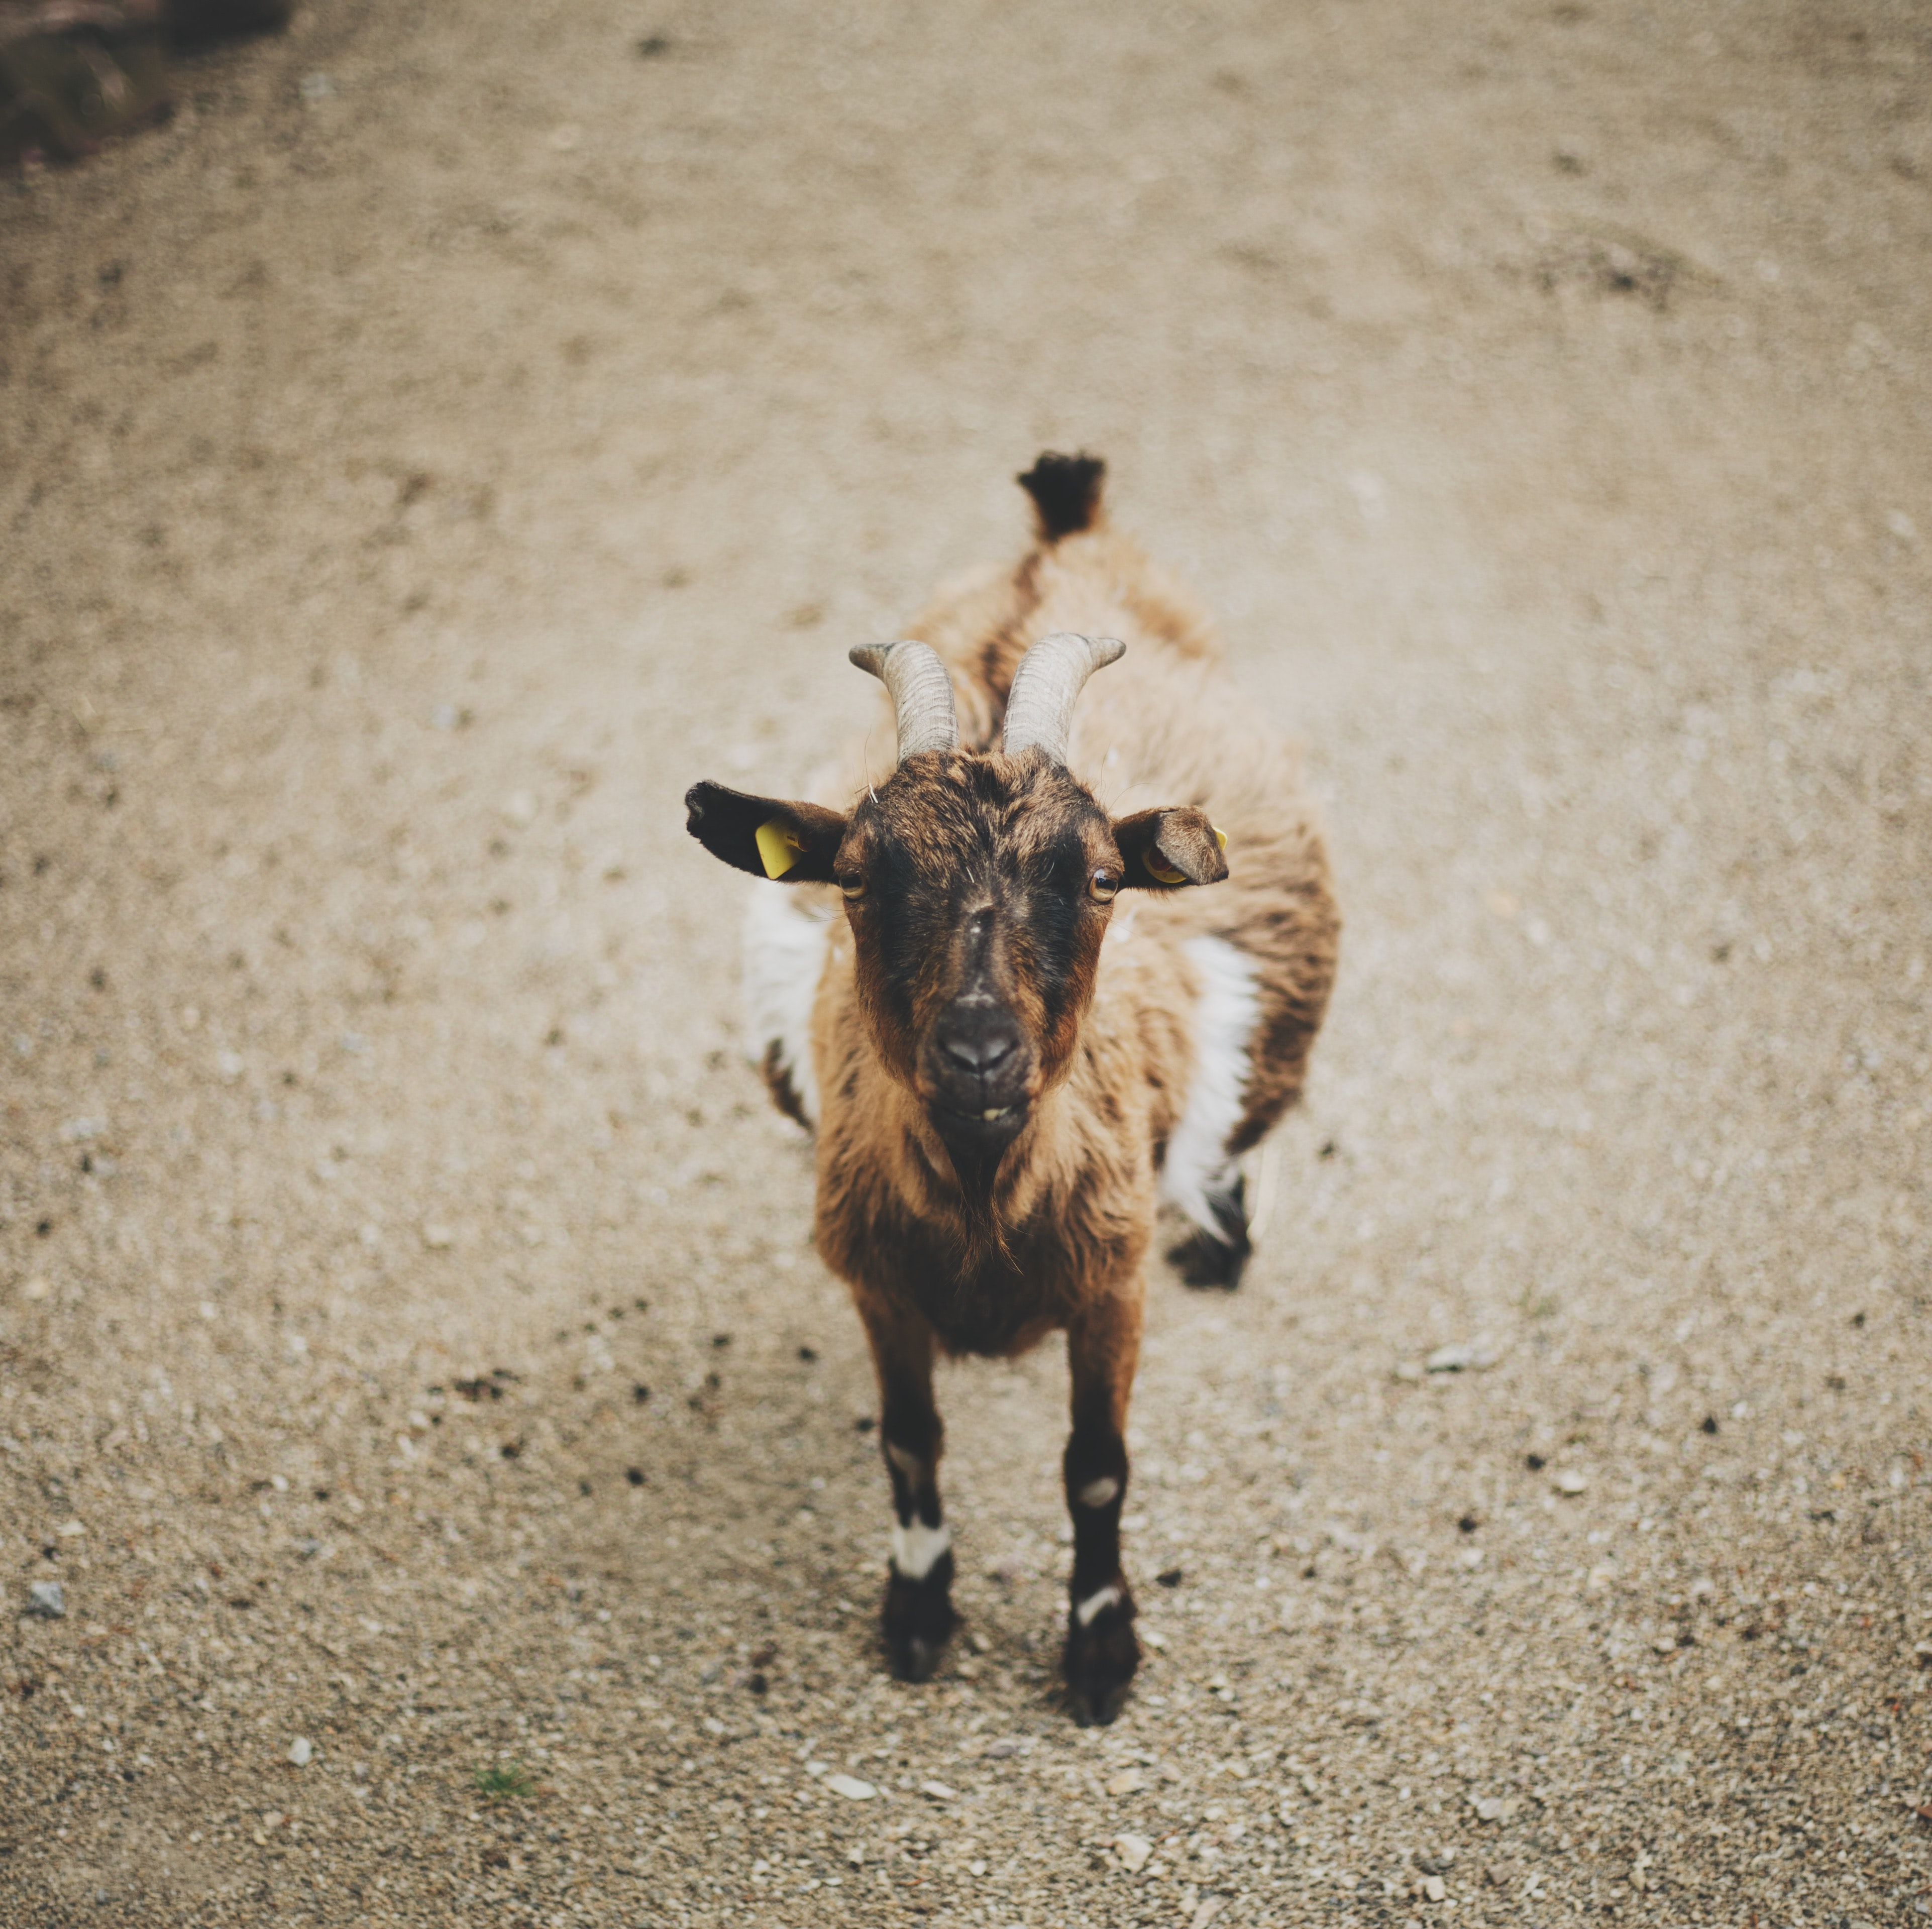 brown and black goat on brown dirt surface